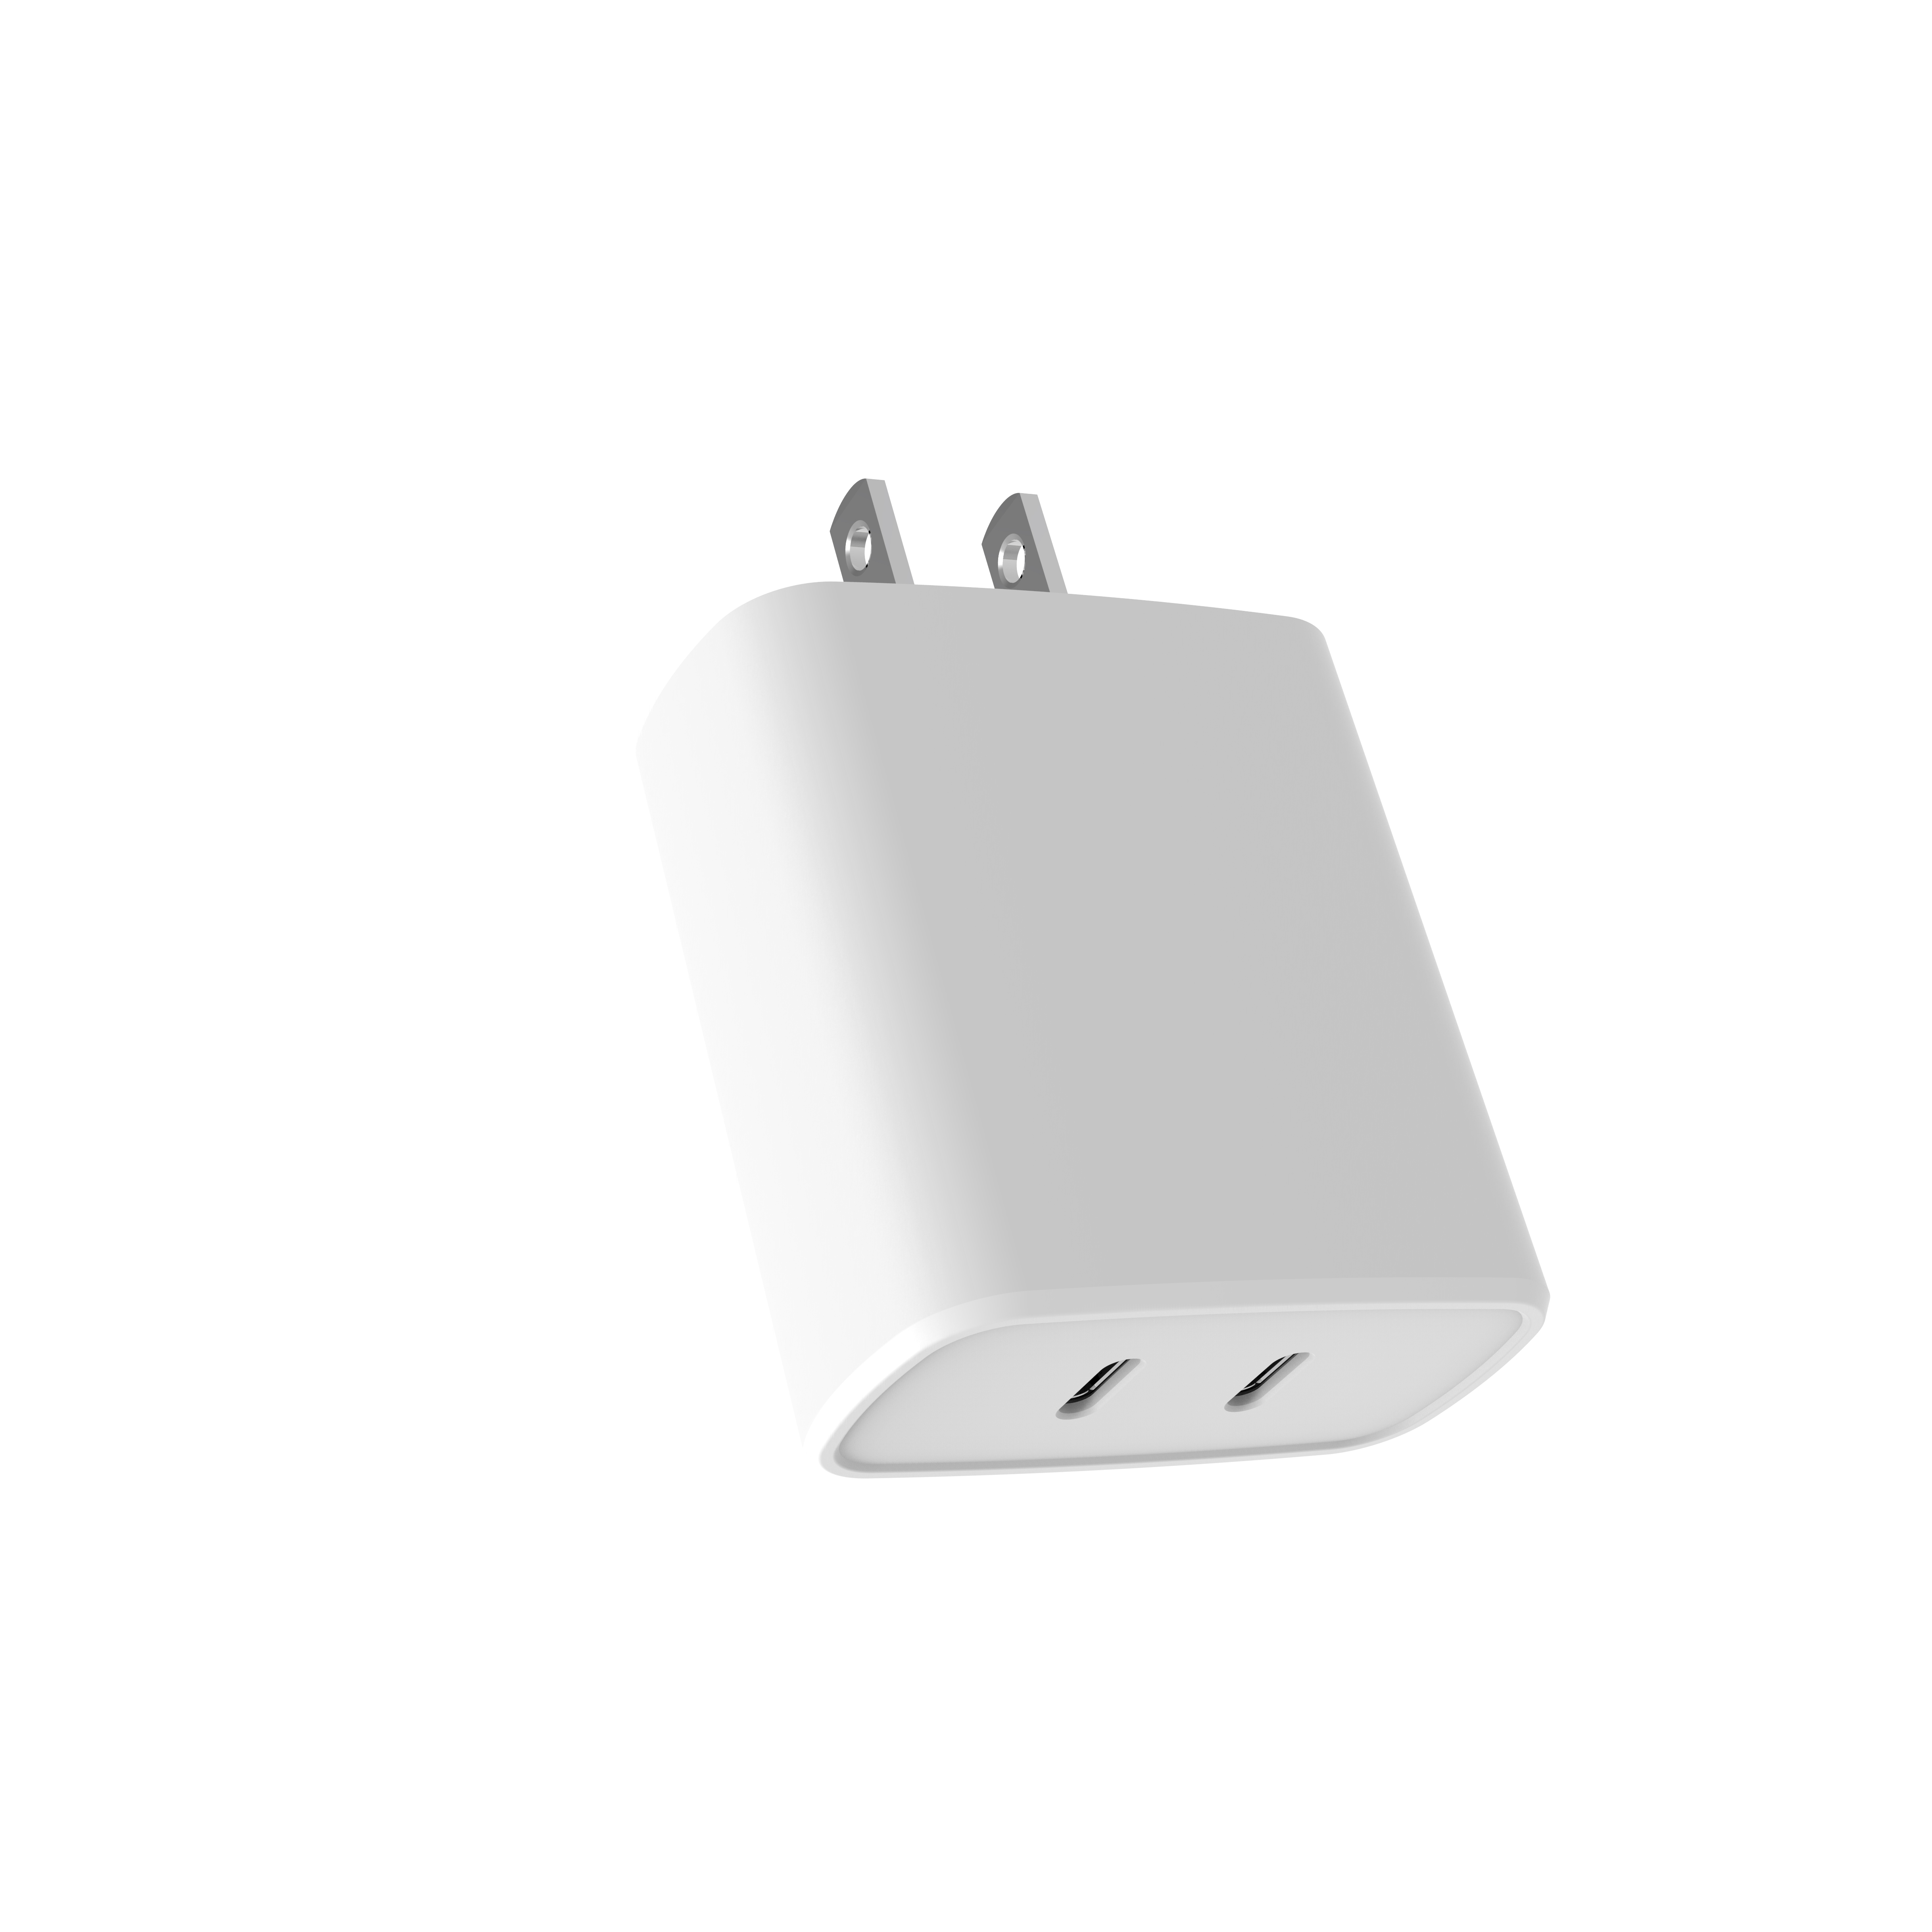 OEM Dual Port Super Cepat Charger Dinding Tipe-C 36W PD Fast Charger USB Type C Adaptor